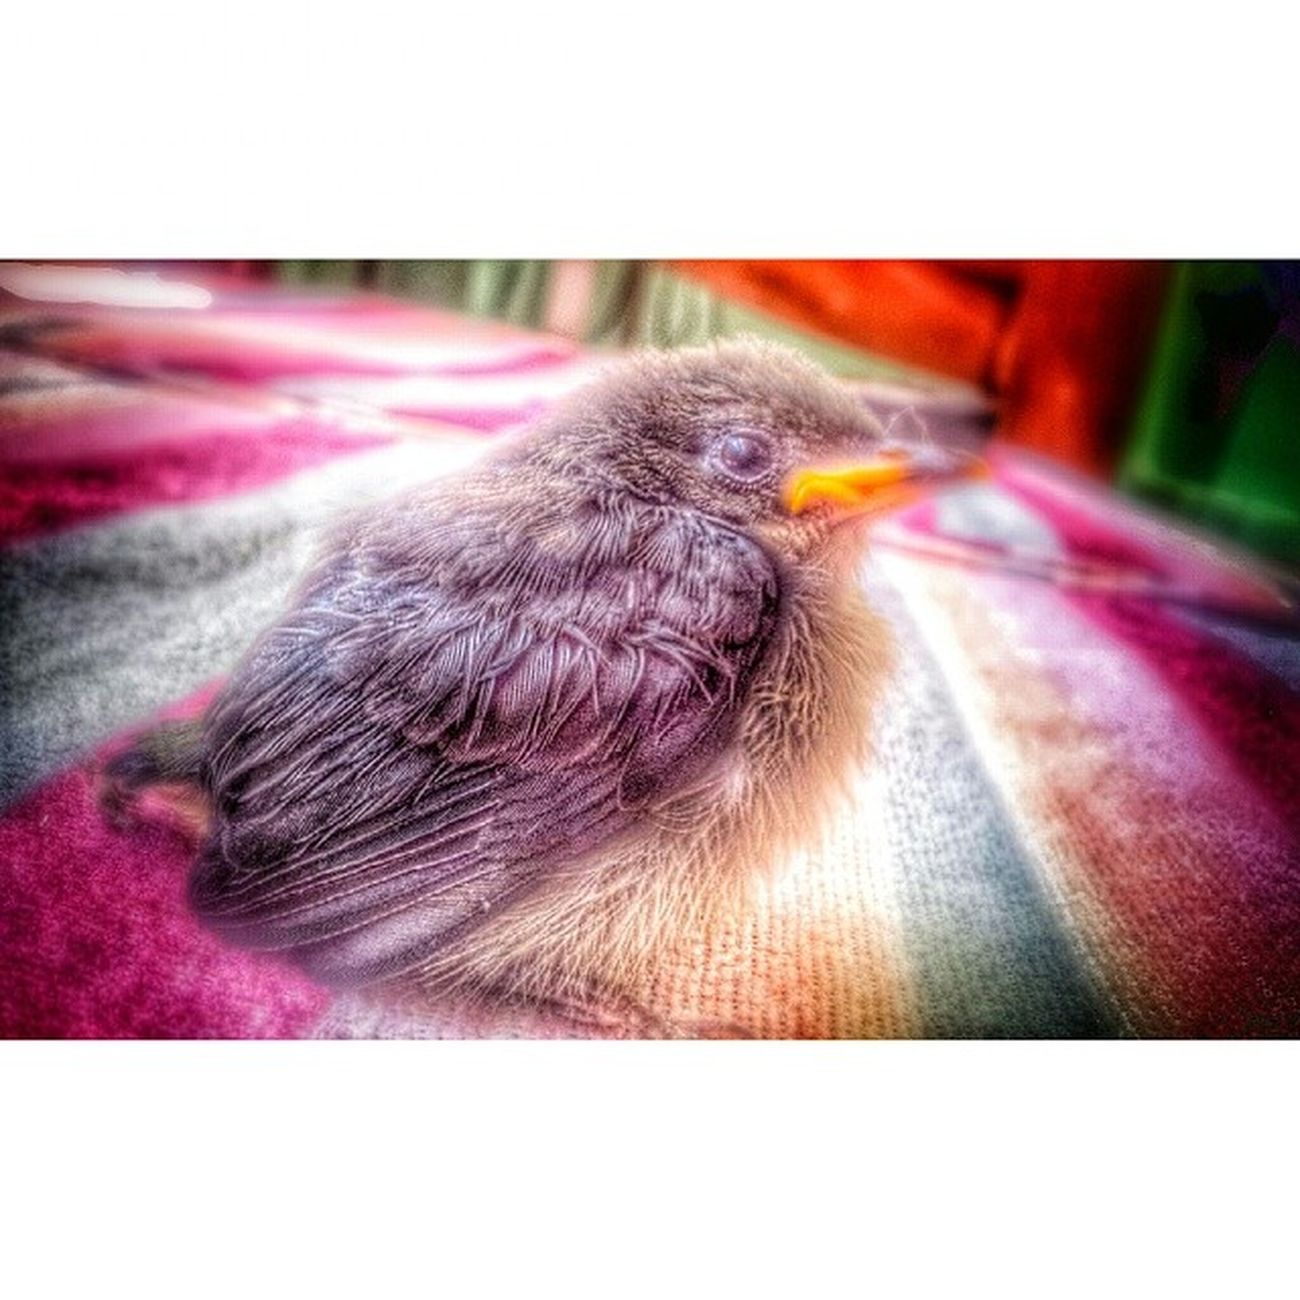 Fledgling. Manang saw this cute and minute creature left behind by its mother at the balcony. So she took it and eventually allowed the fledgling to fly in a safer place coz we got a bunch of feline and canine patrolling around the crib :) Bird Fledgling Aves Ibon